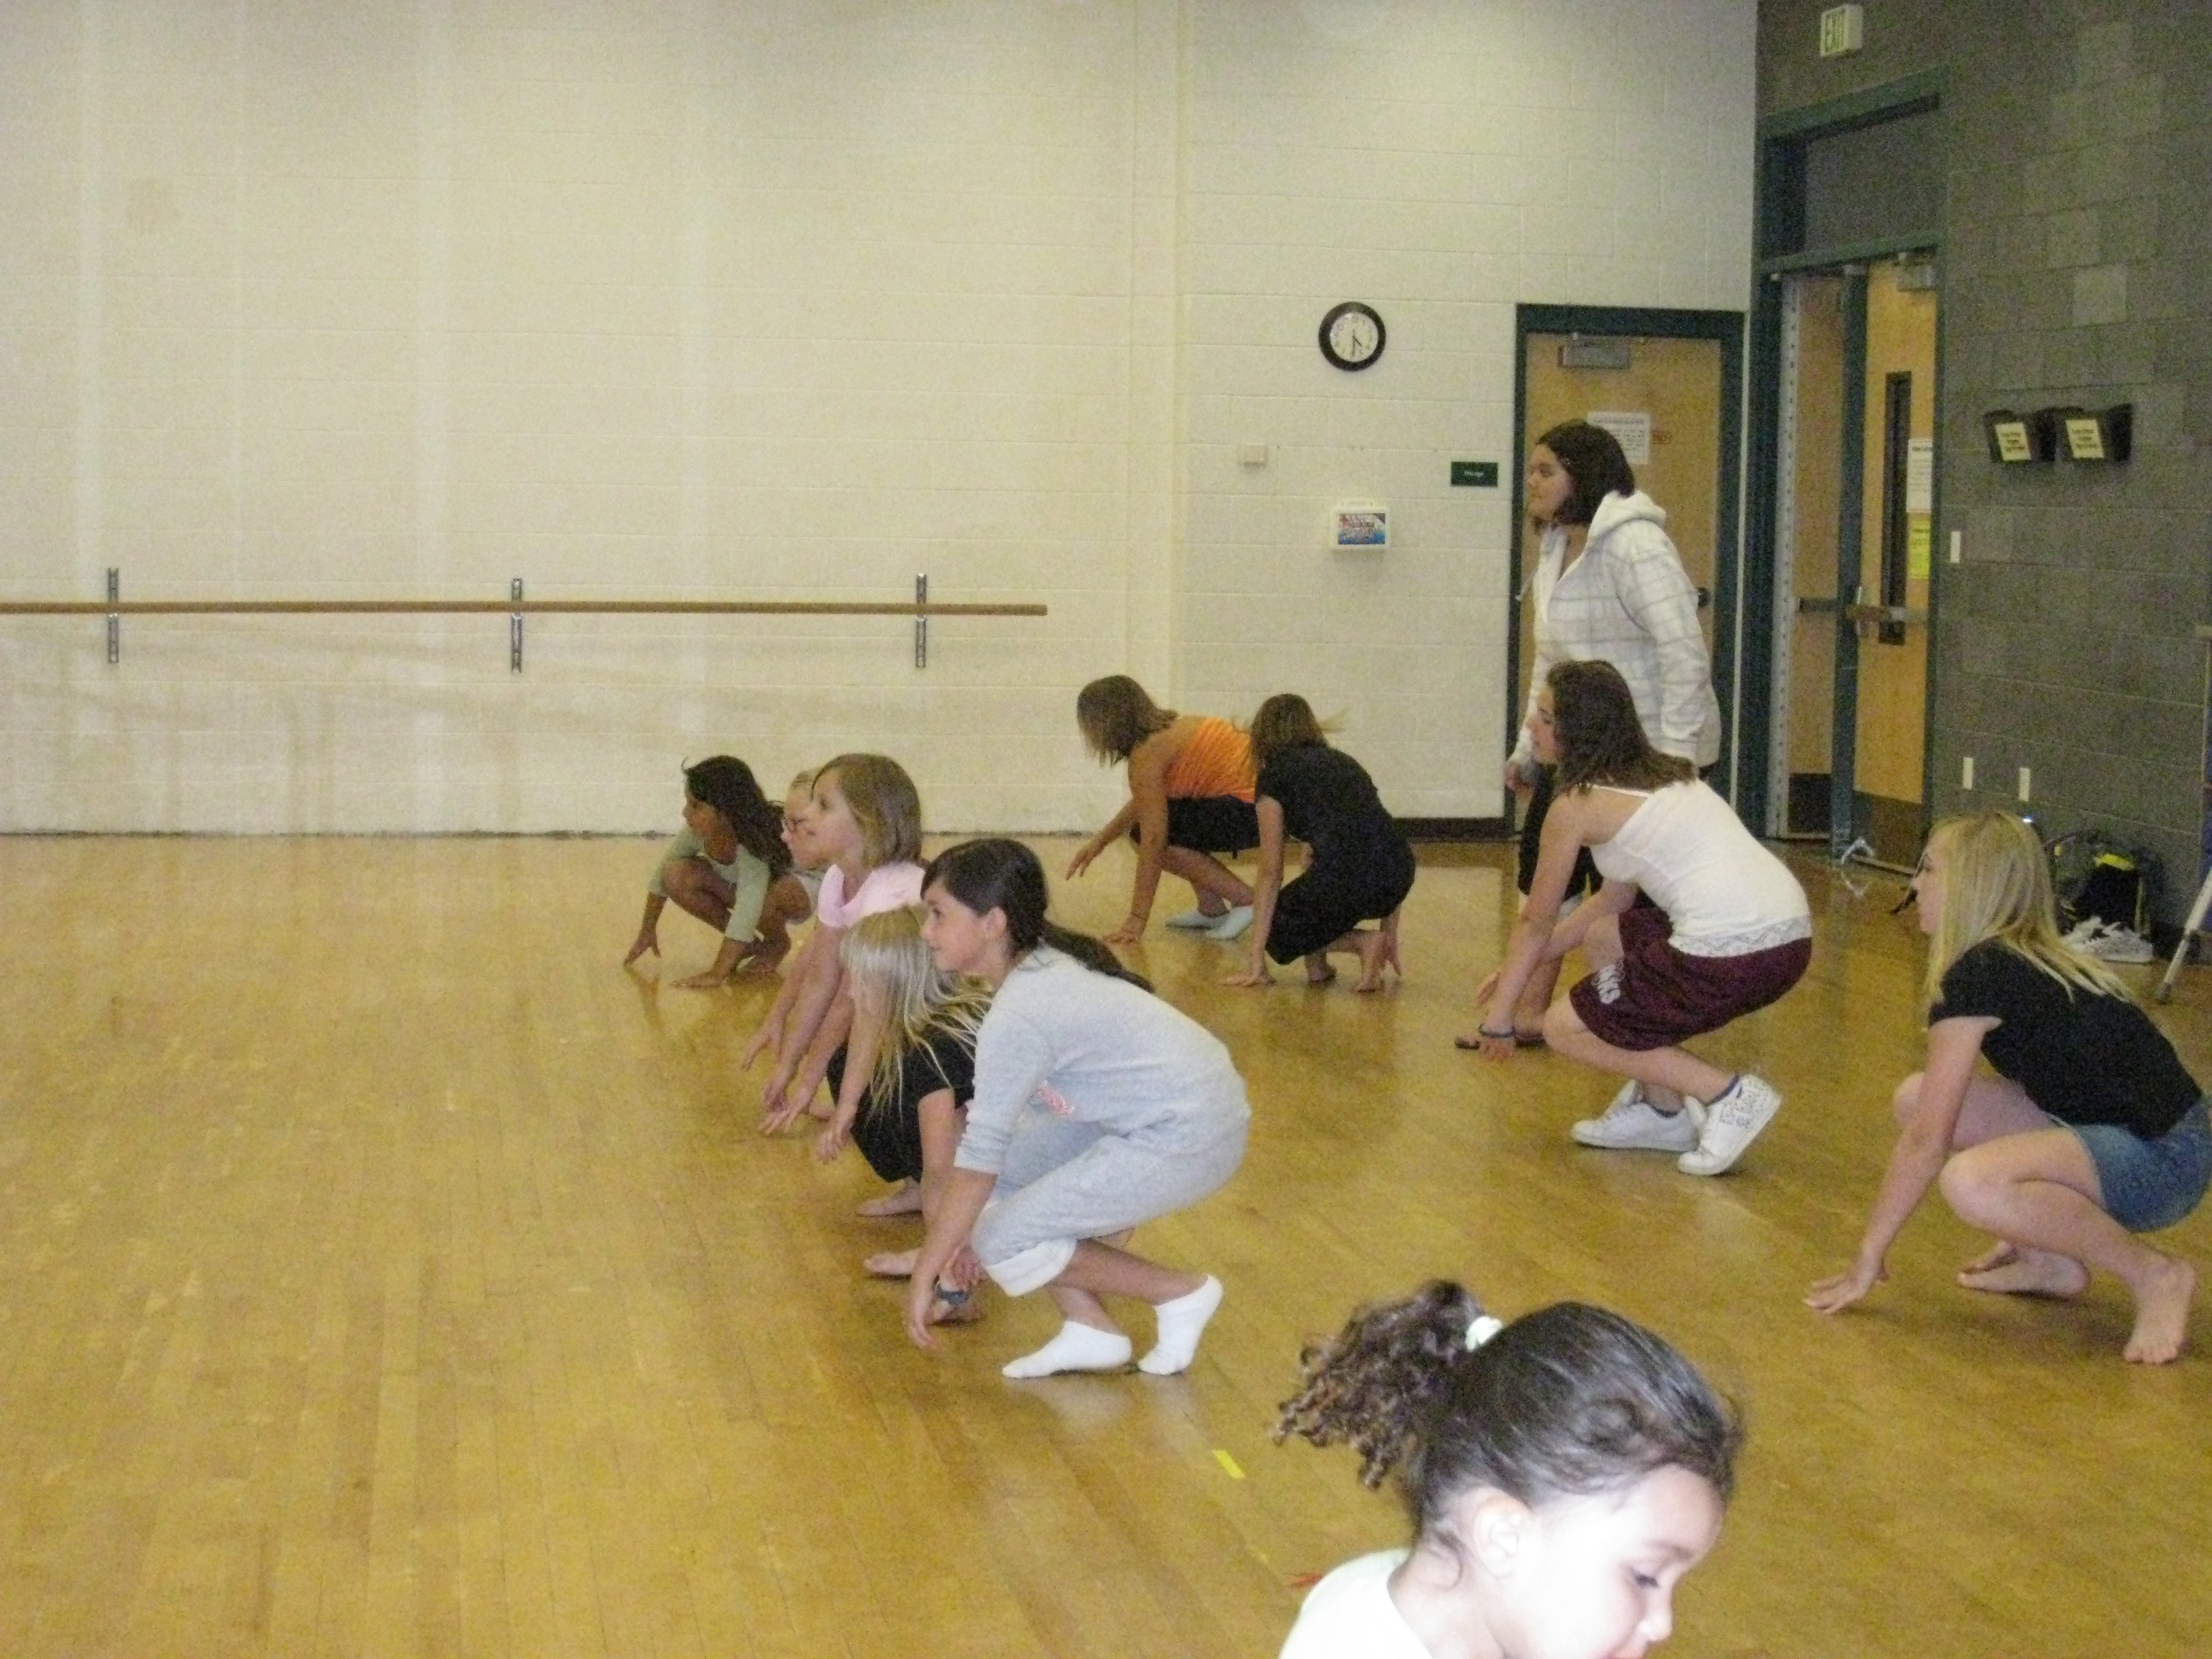 Class in session at Mesquite Recreation Center, Mesquite, Nevada, date not specified   Photo courtesy of Mesquite Athletics and Leisure Services Department, St. George News